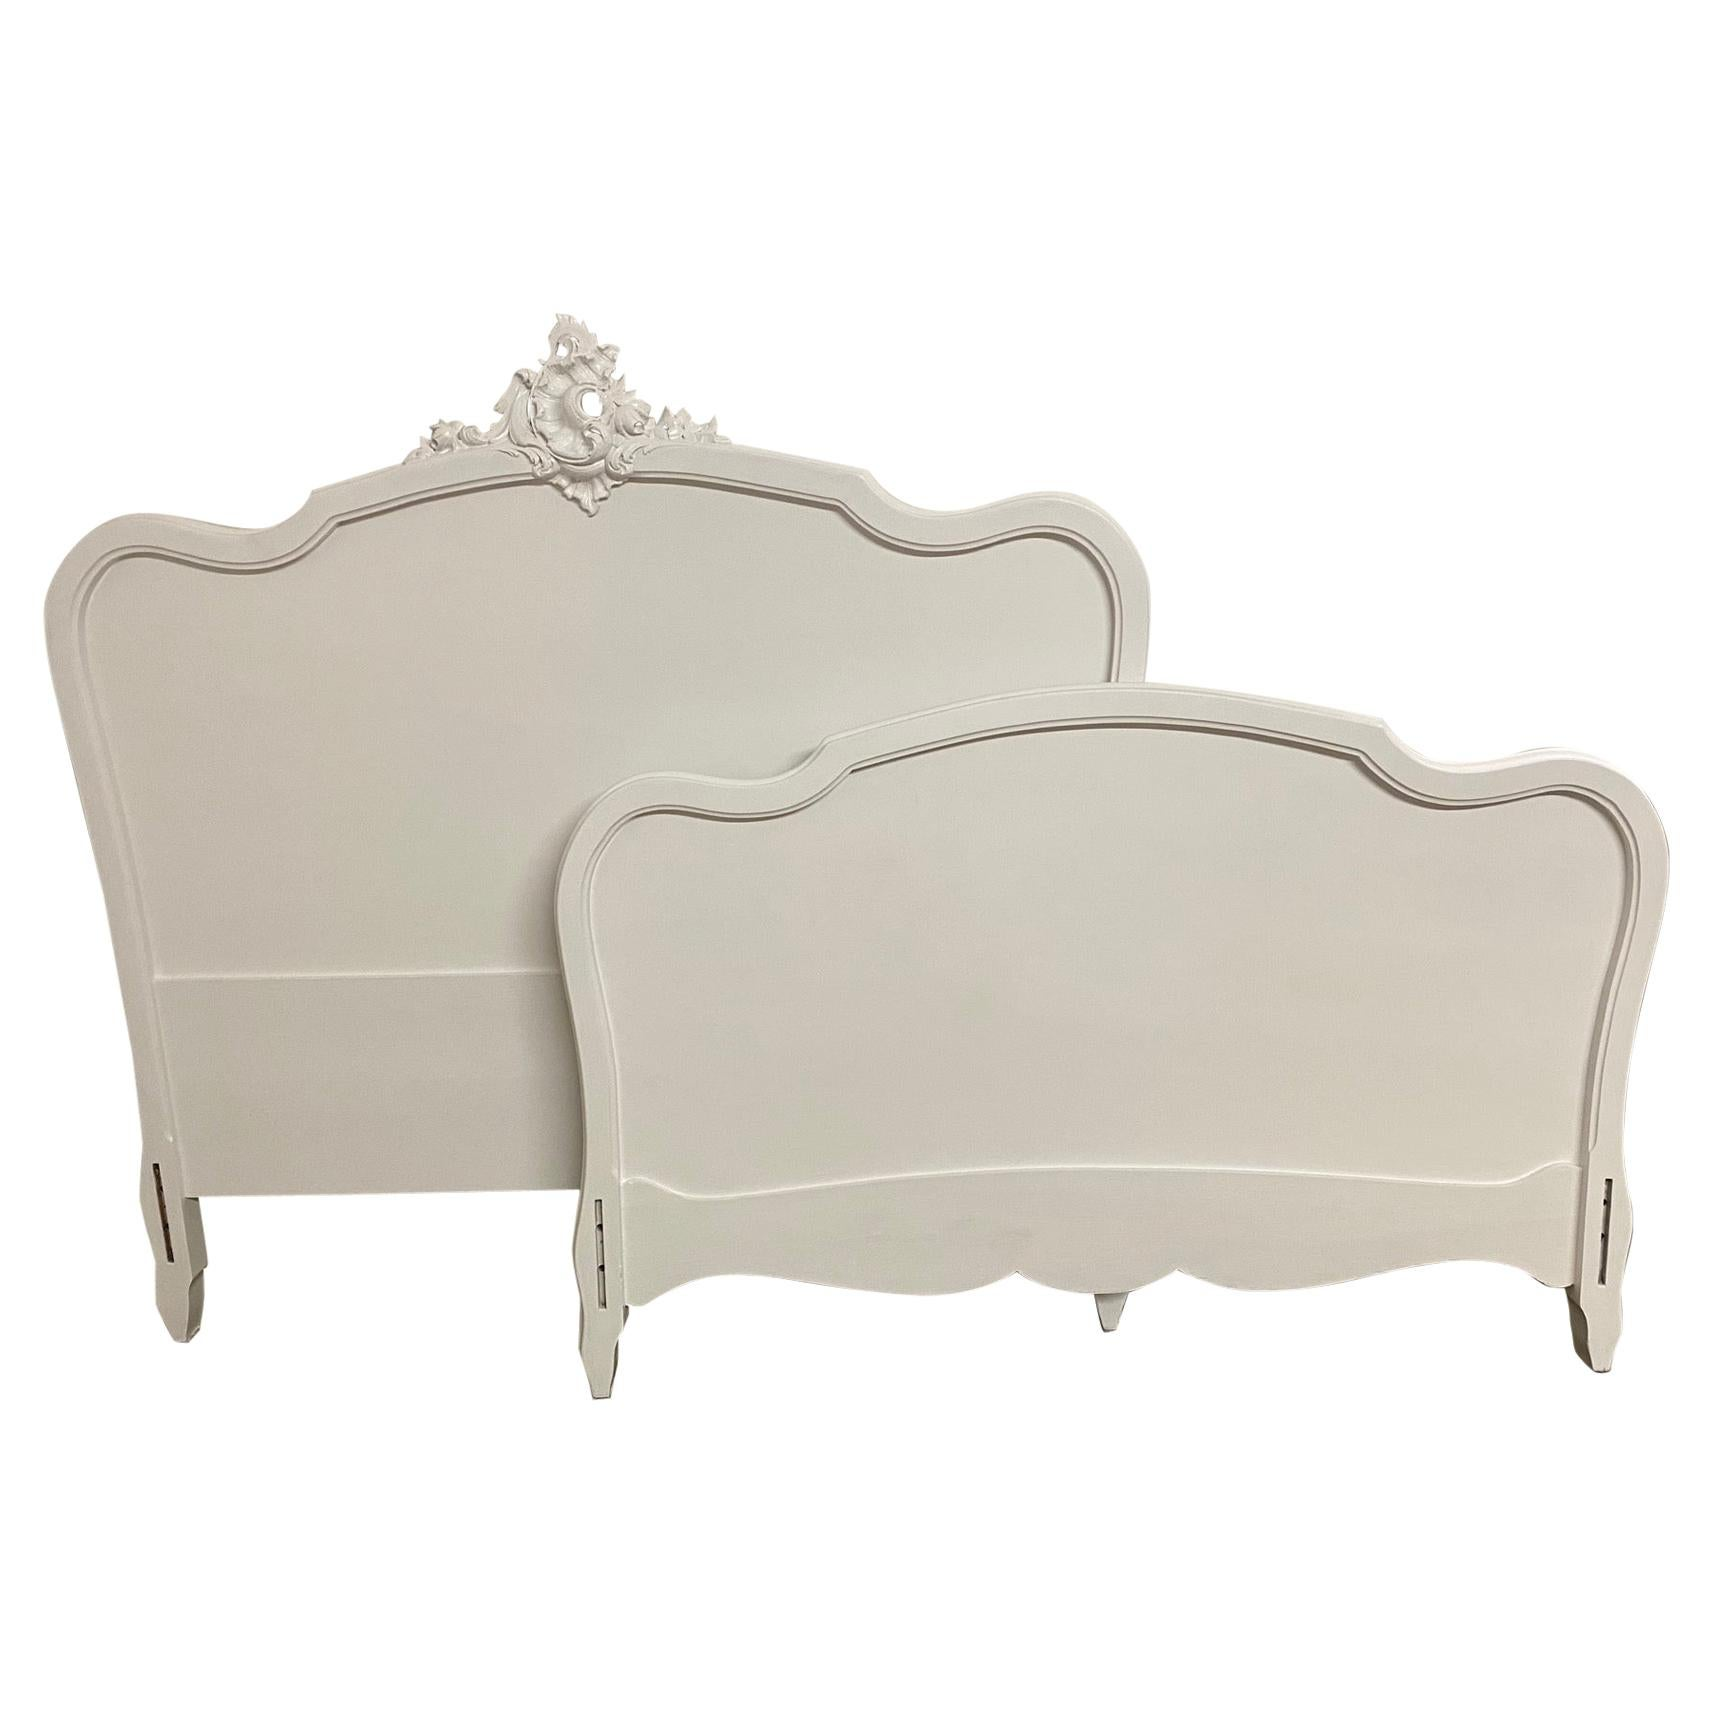 French Louis XV Rococo Style Painted Bed